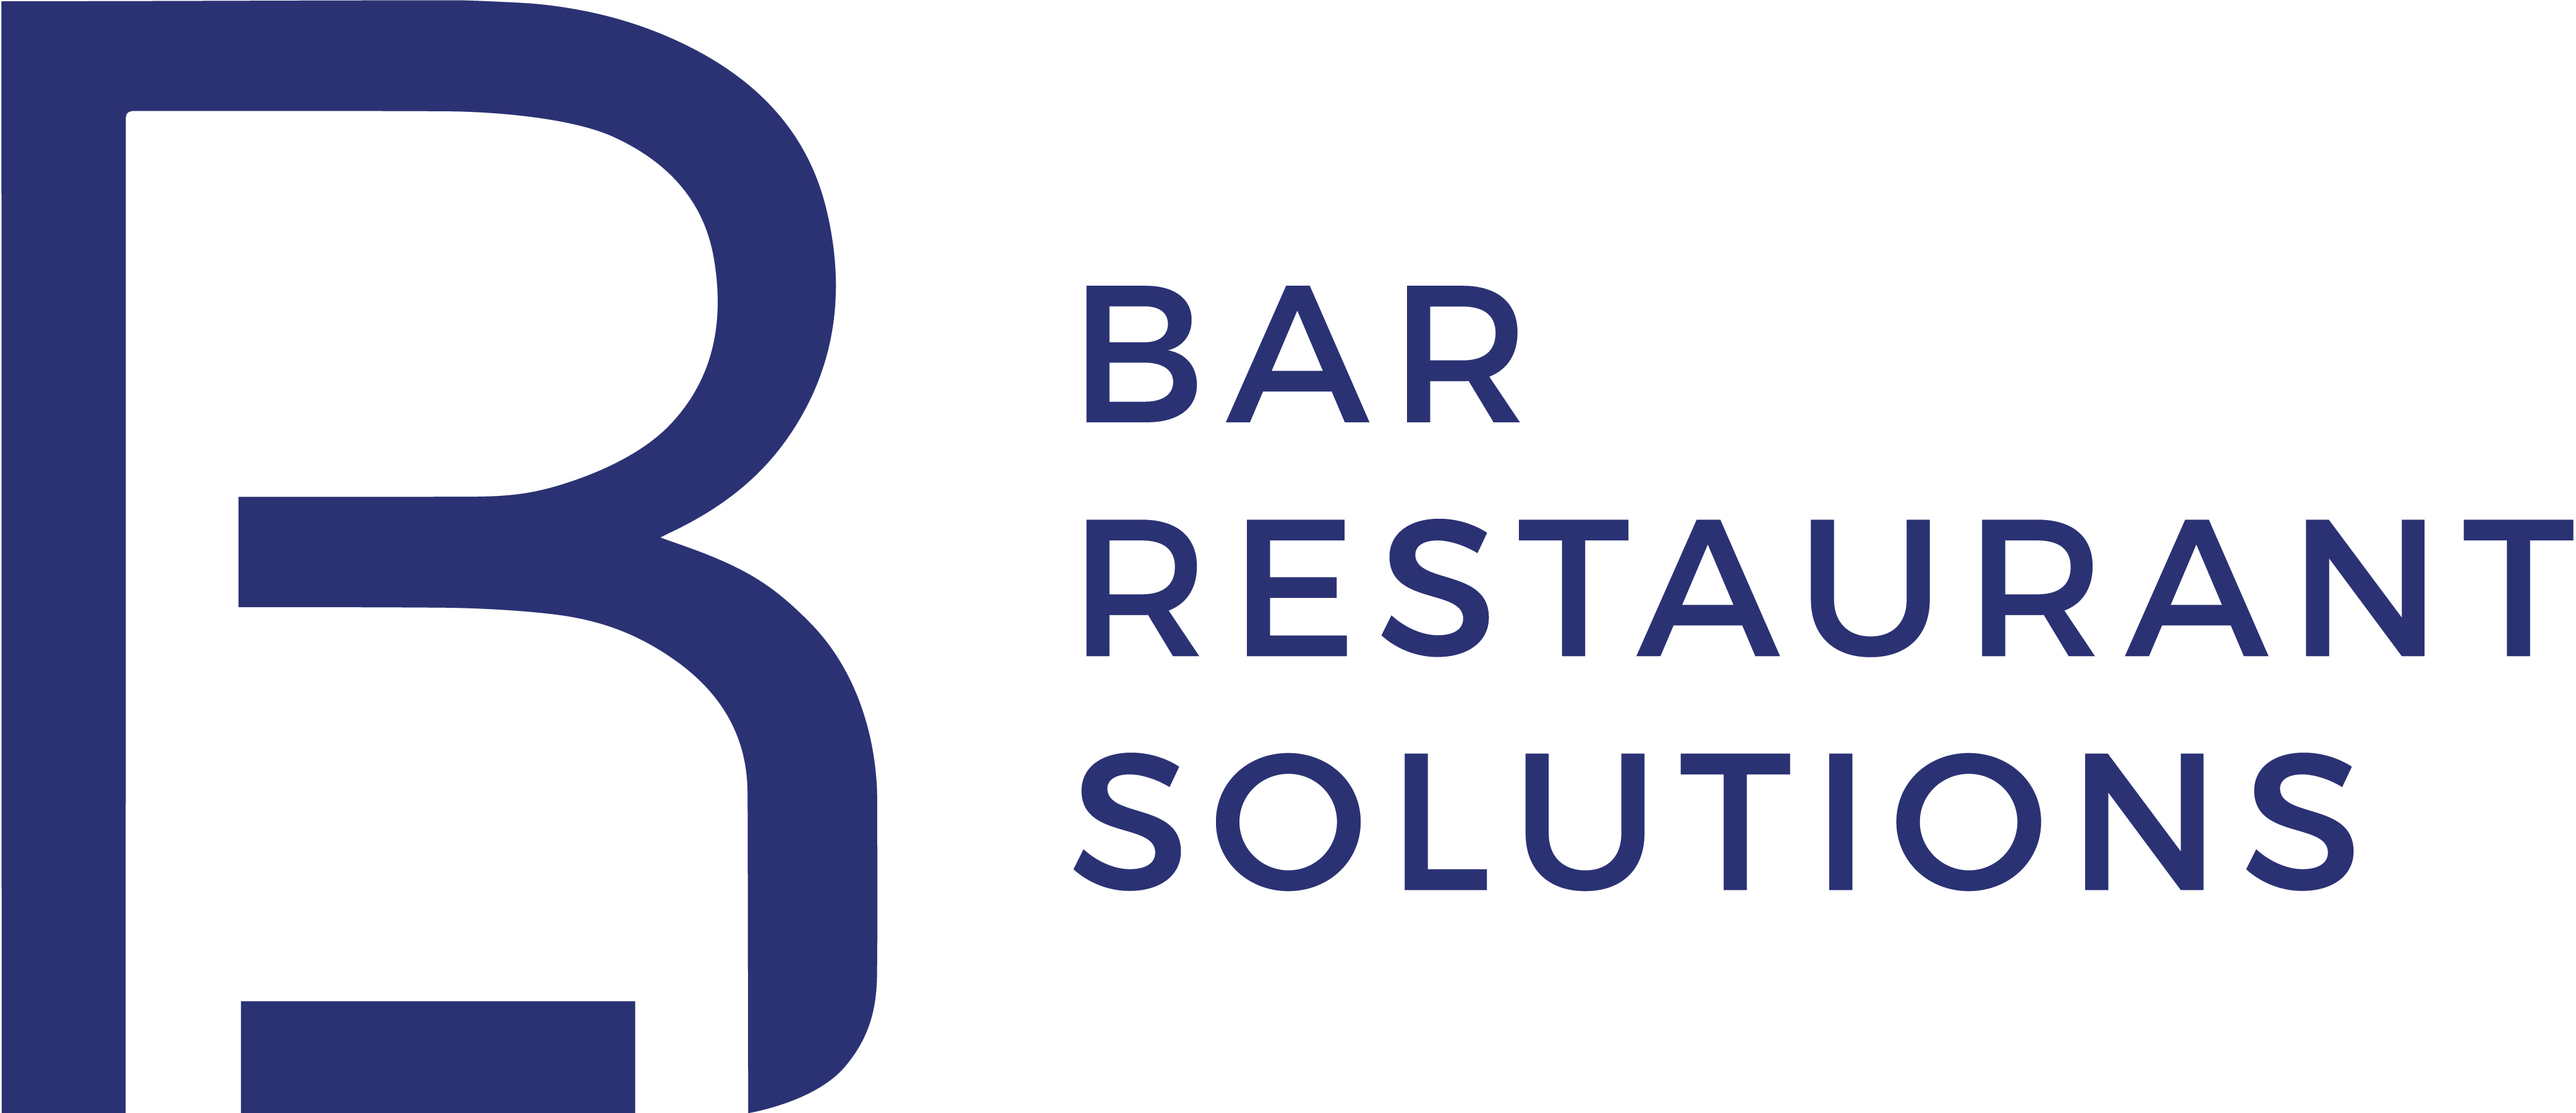 Bar Restaurant Solutions Logo